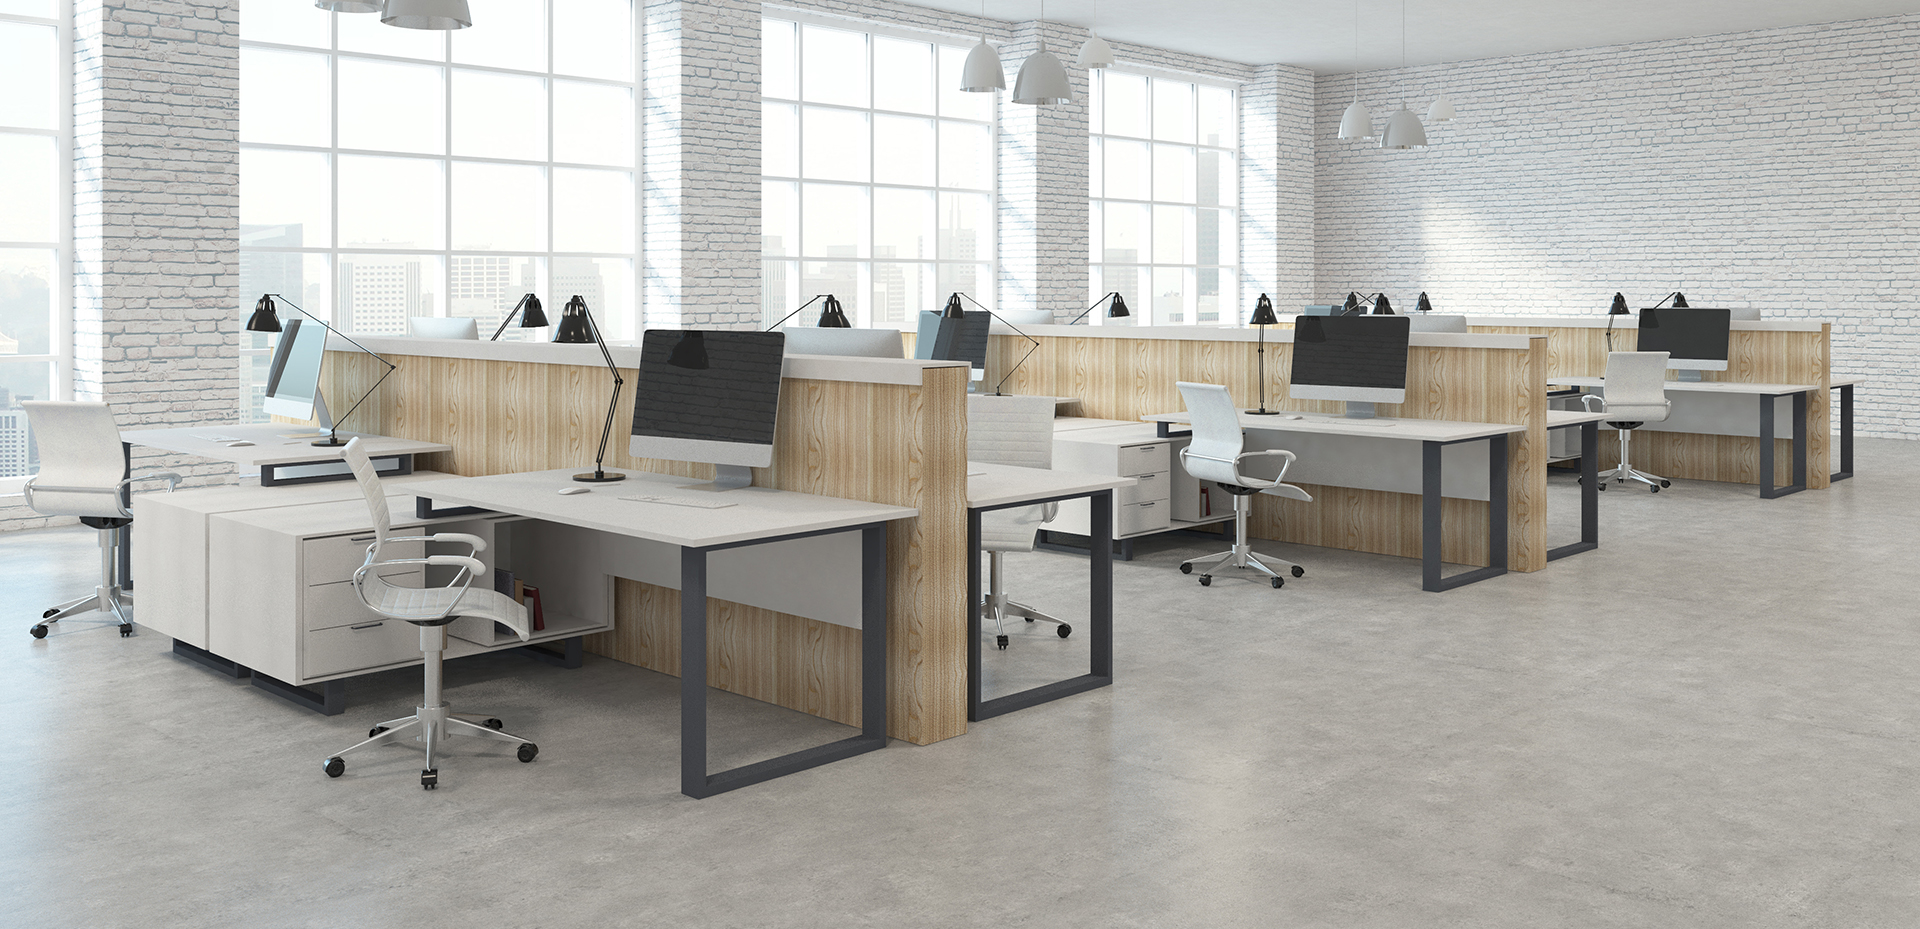 Office Cleaning Services in Sheffield